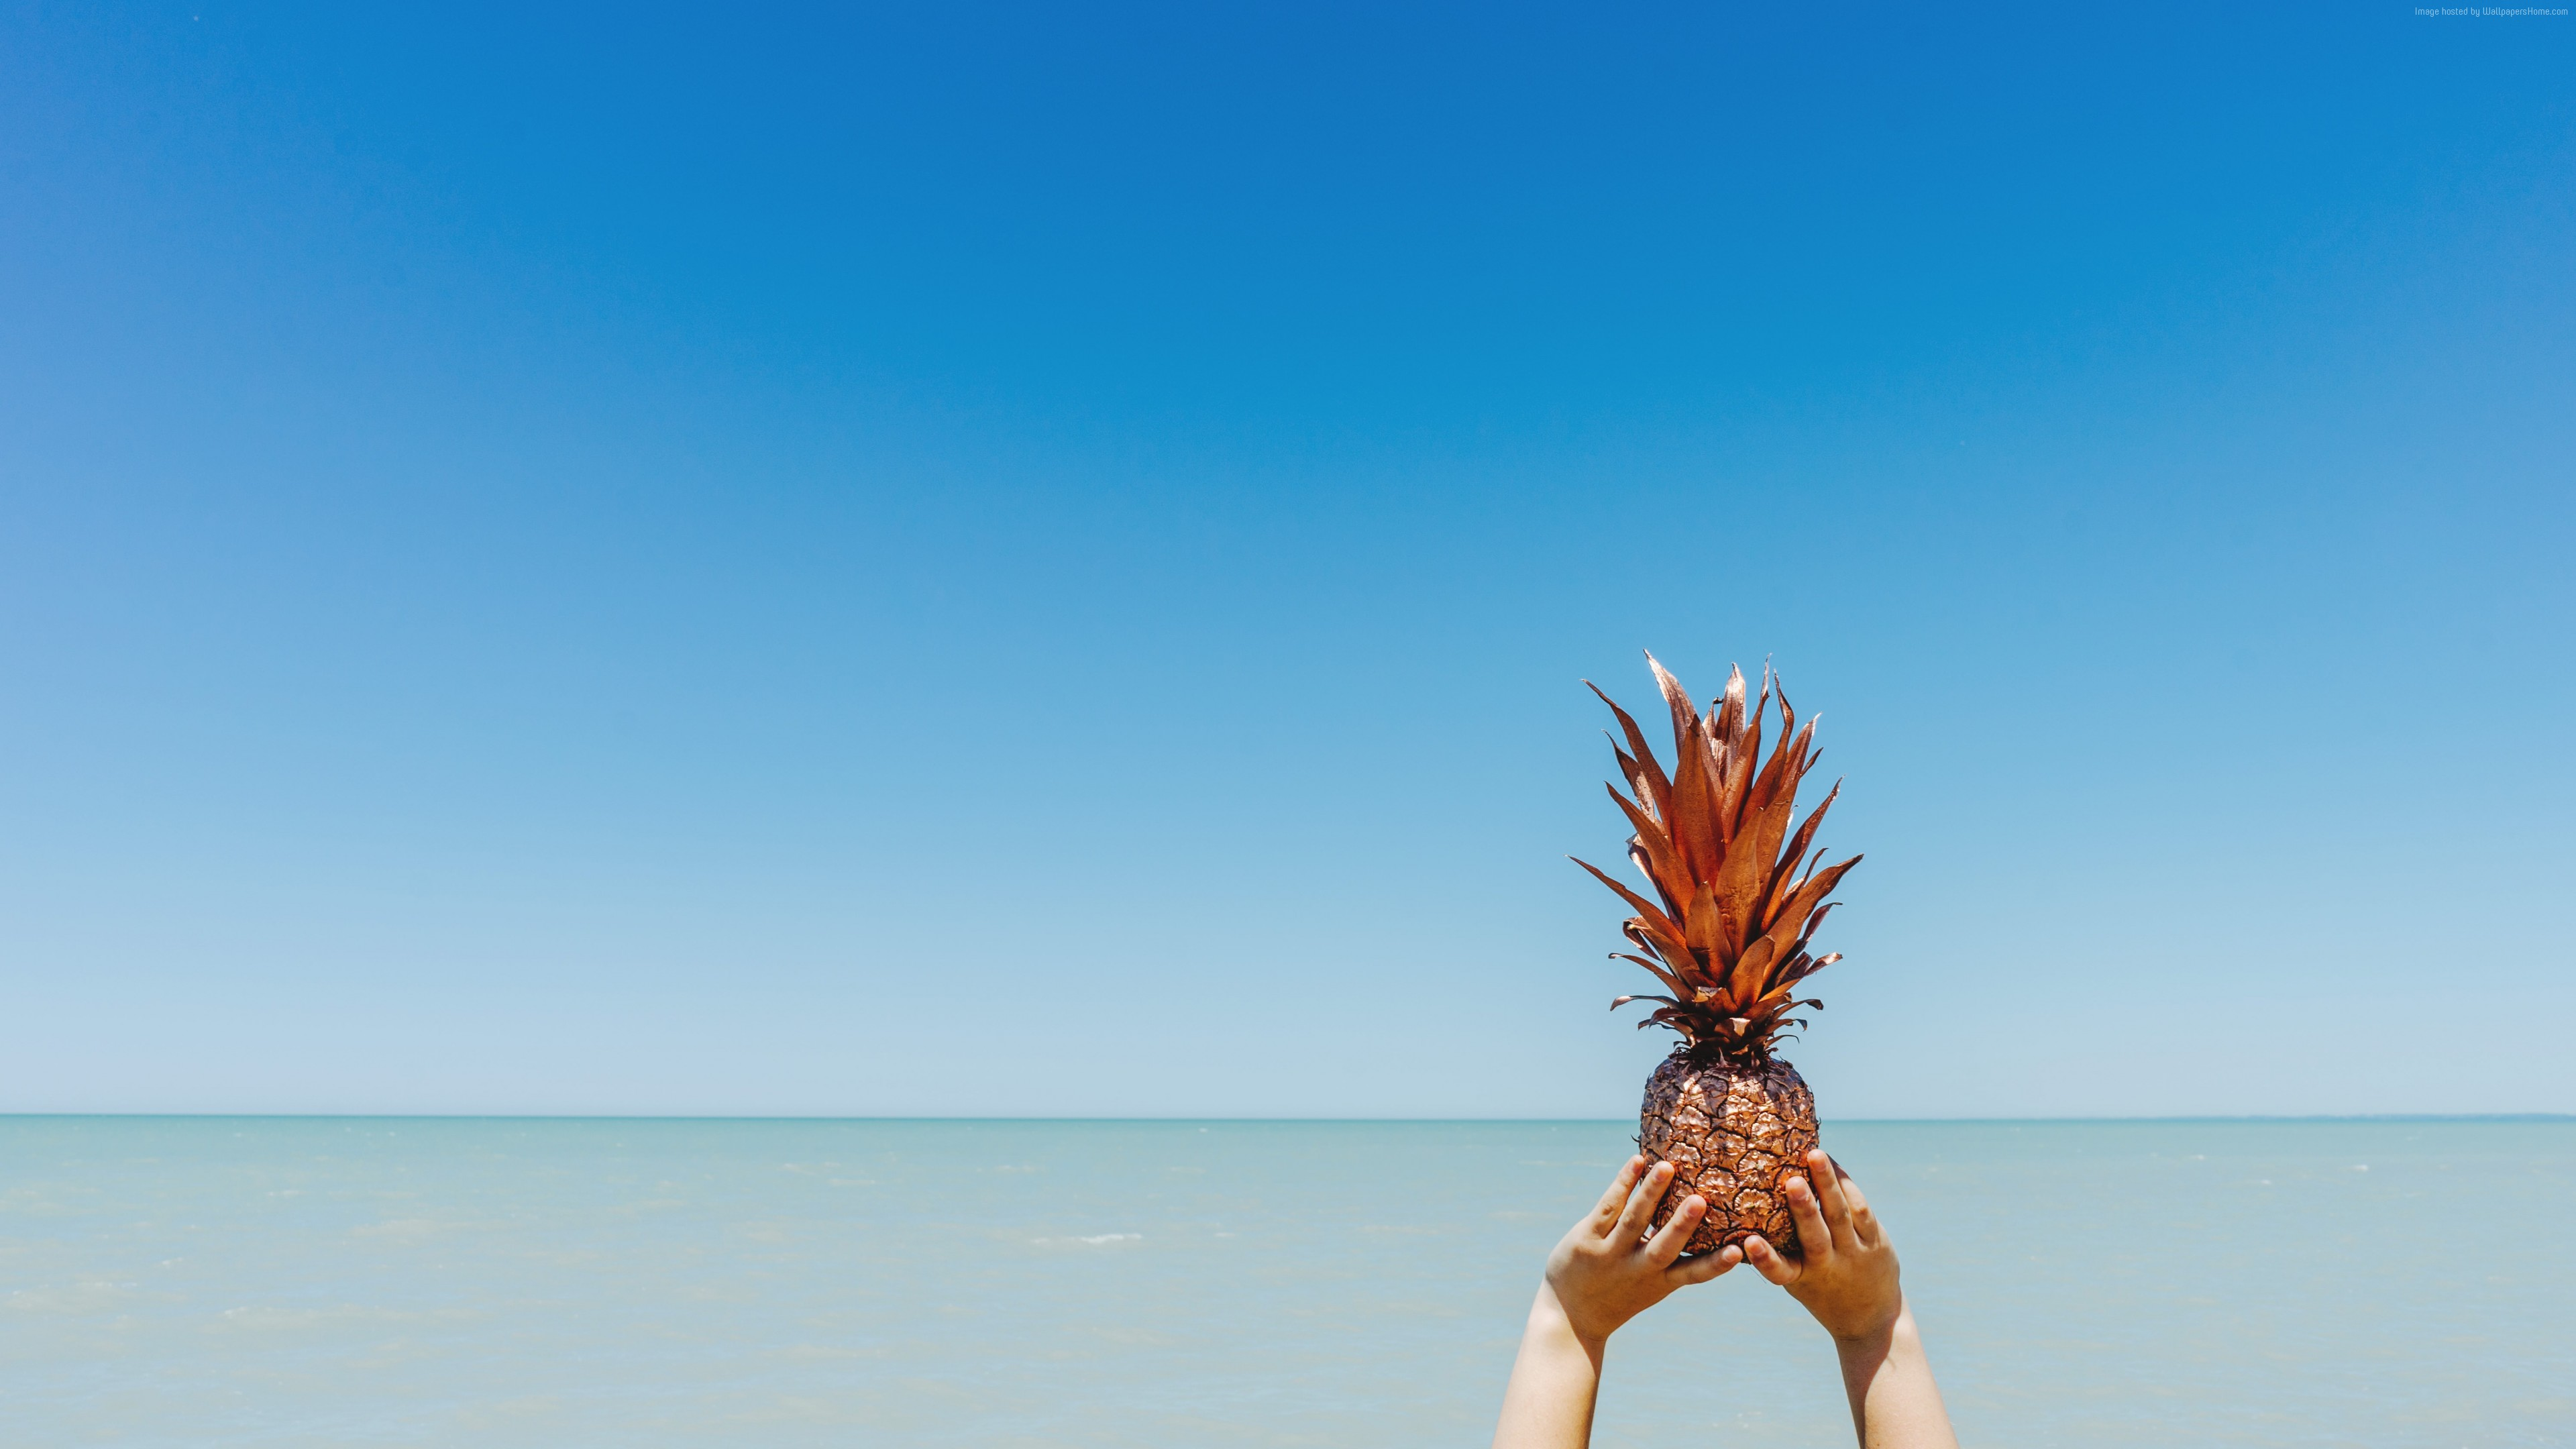 Stock Images pineapple, sky, ocean, 5k, Stock Images